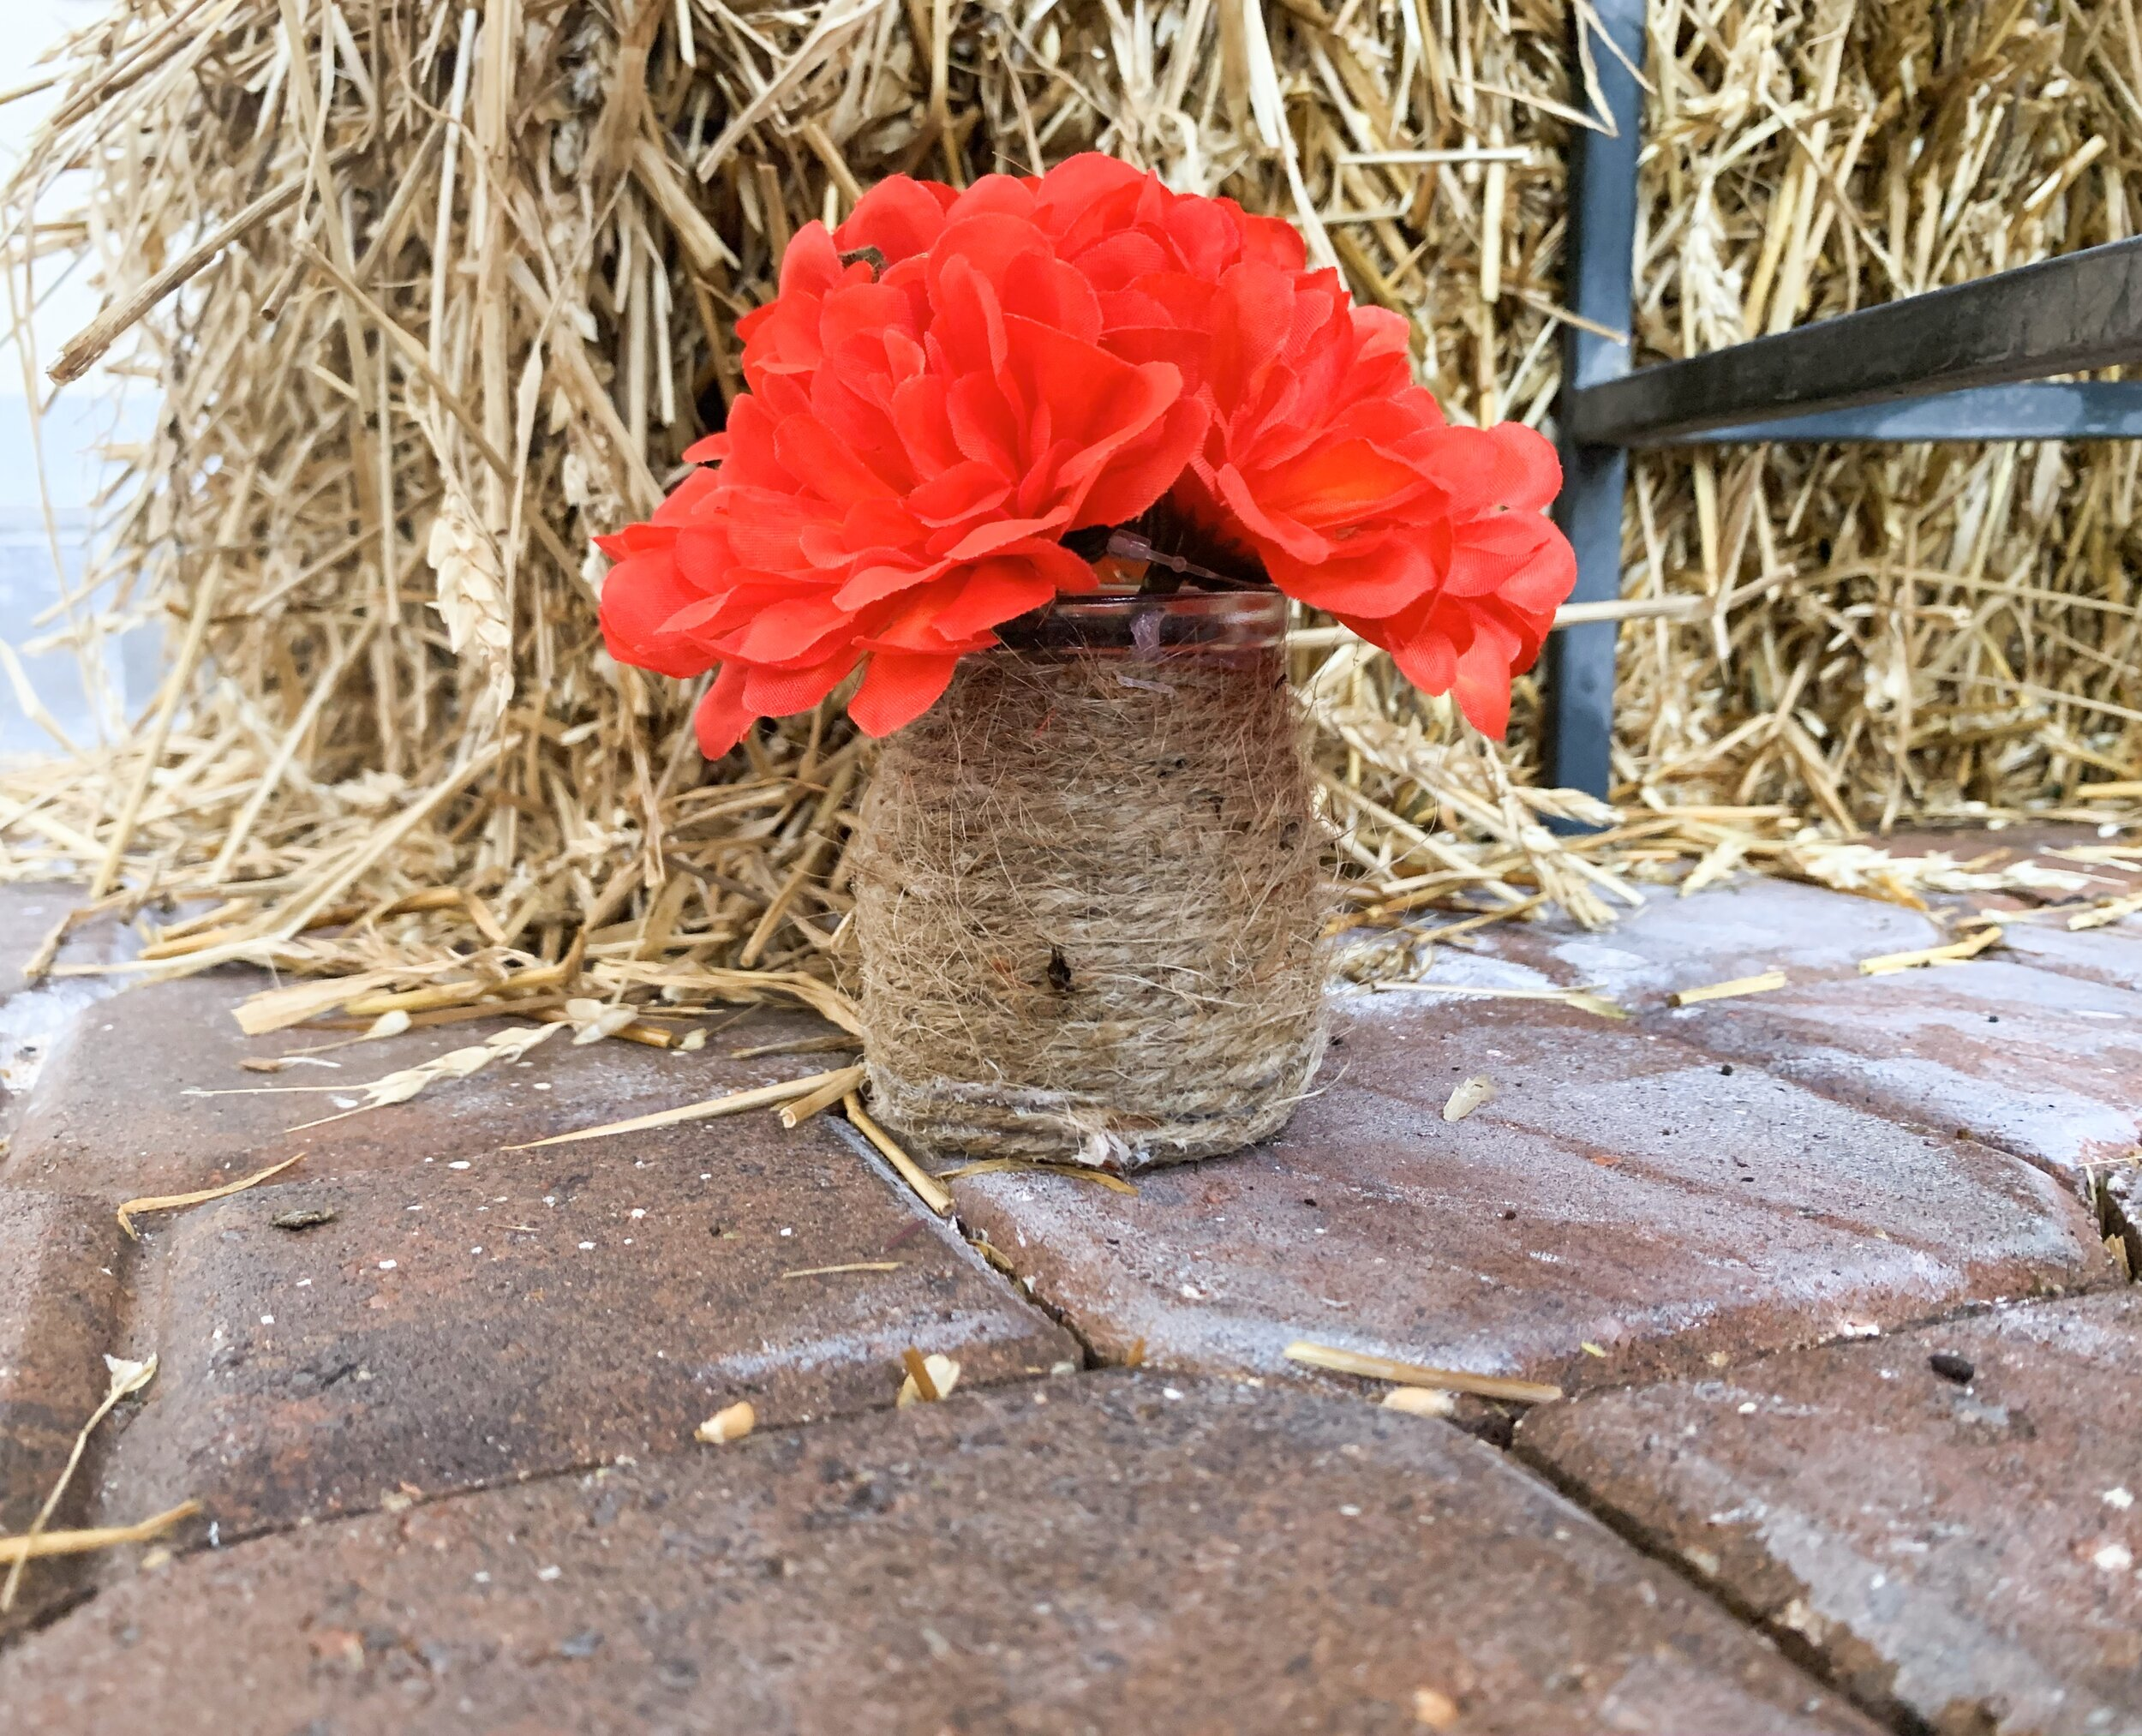 Twine wrapped vases with red flowers $2.50 @ Old Time Pottery